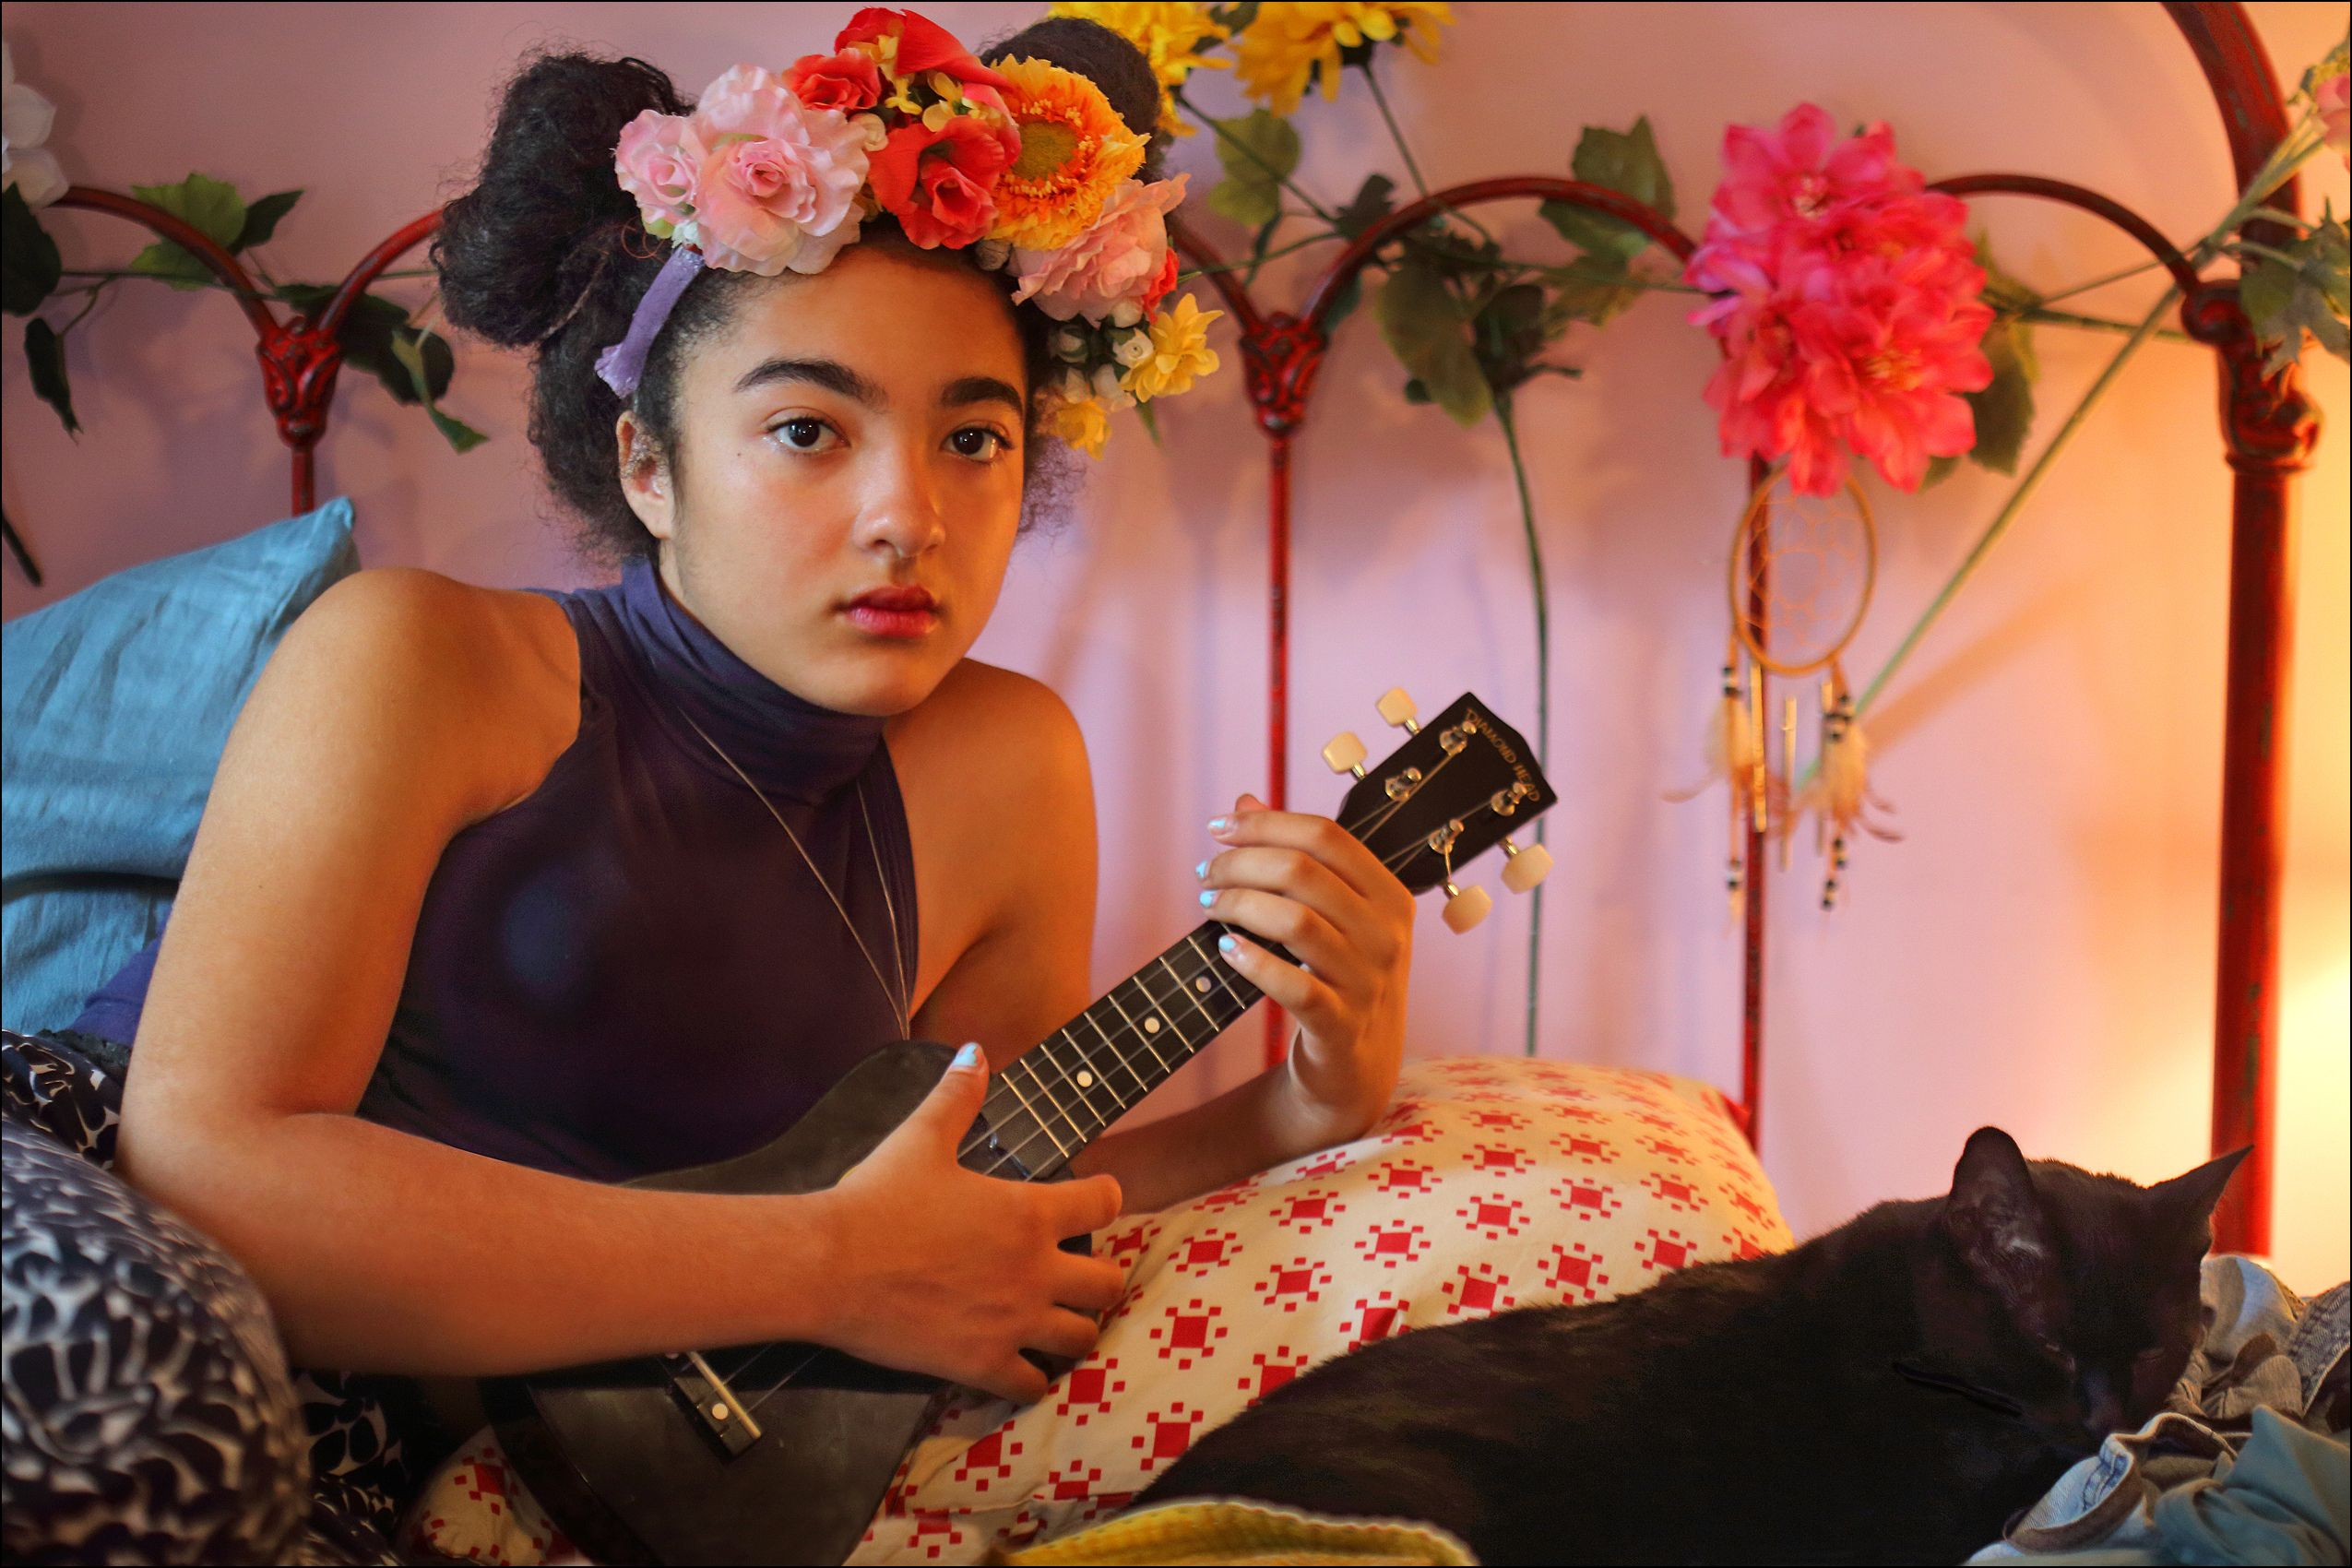 Ruby-with-Ukulele.jpg